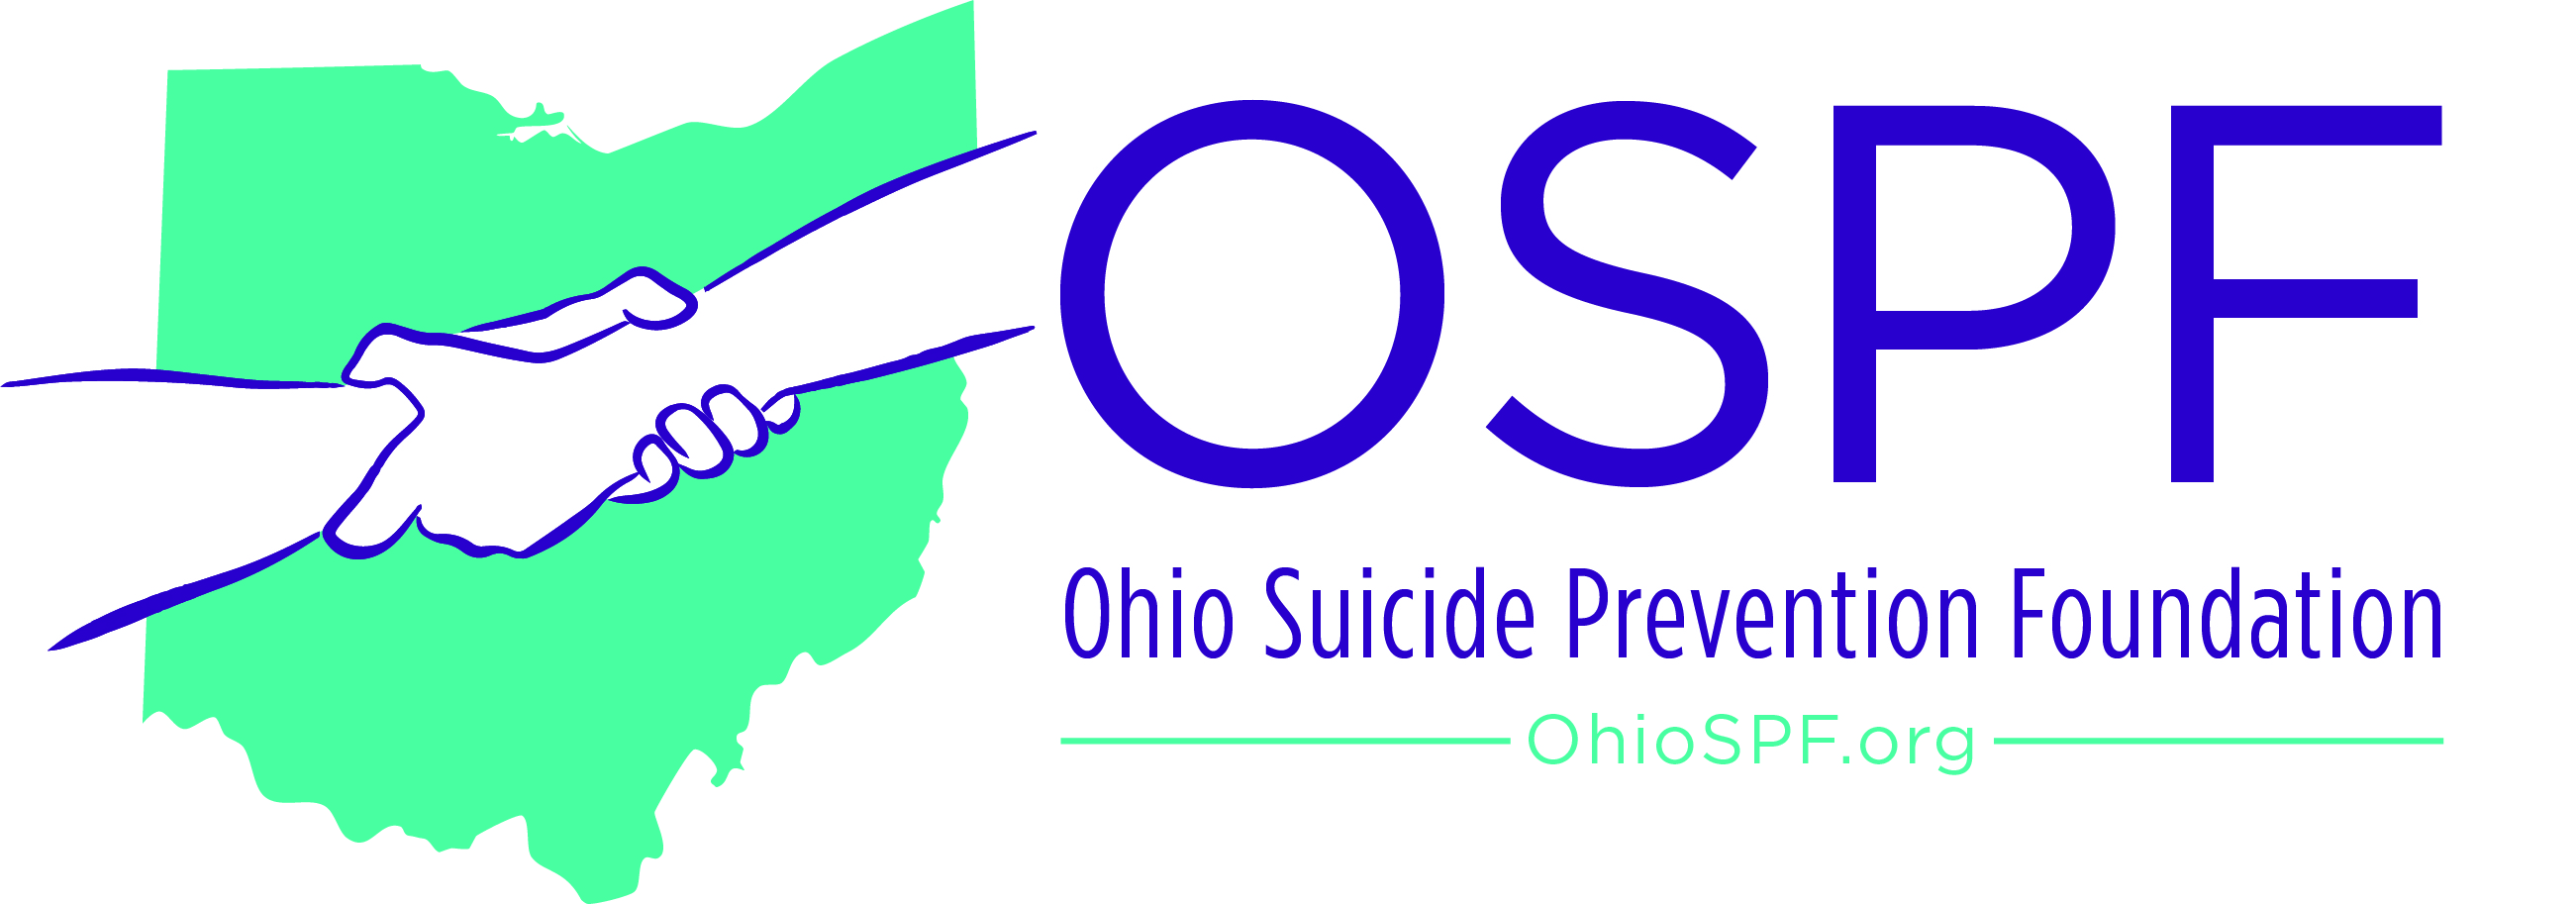 Ohio Suicide Prevention Foundation